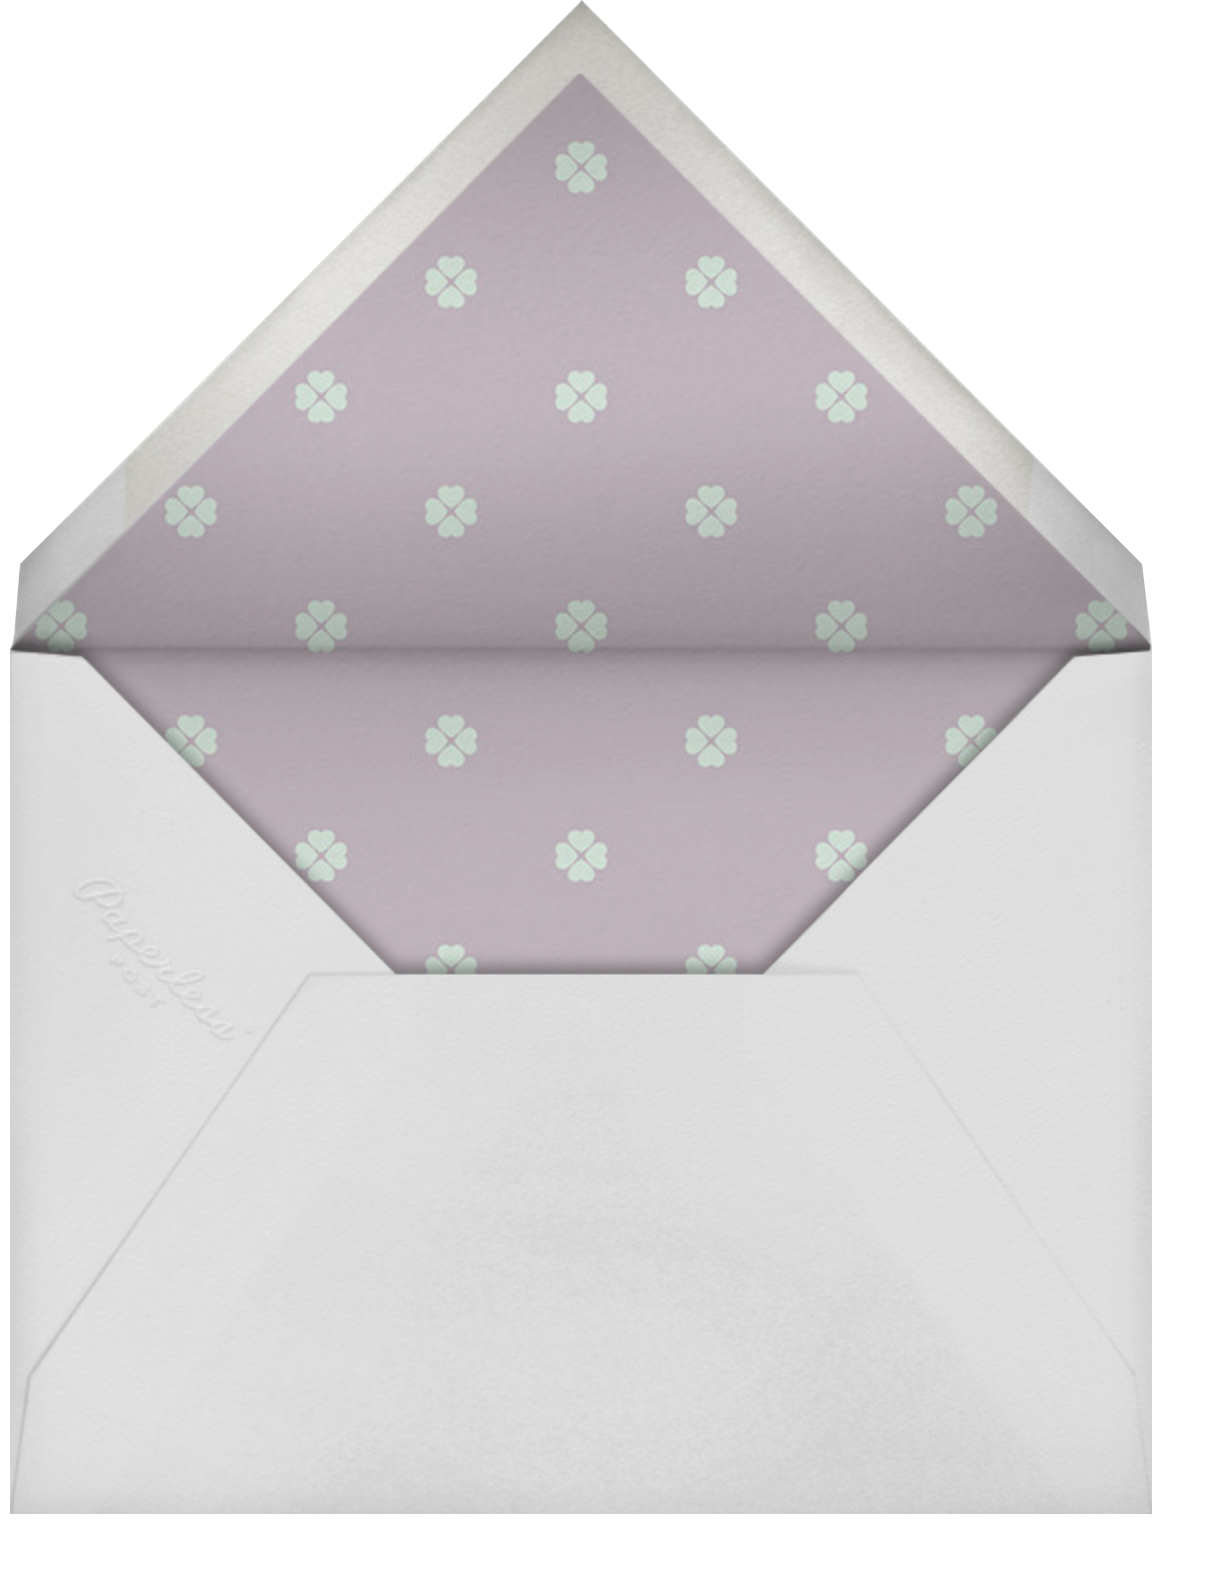 Colorblocked Border - Mint/Lilac - kate spade new york - Adult birthday - envelope back